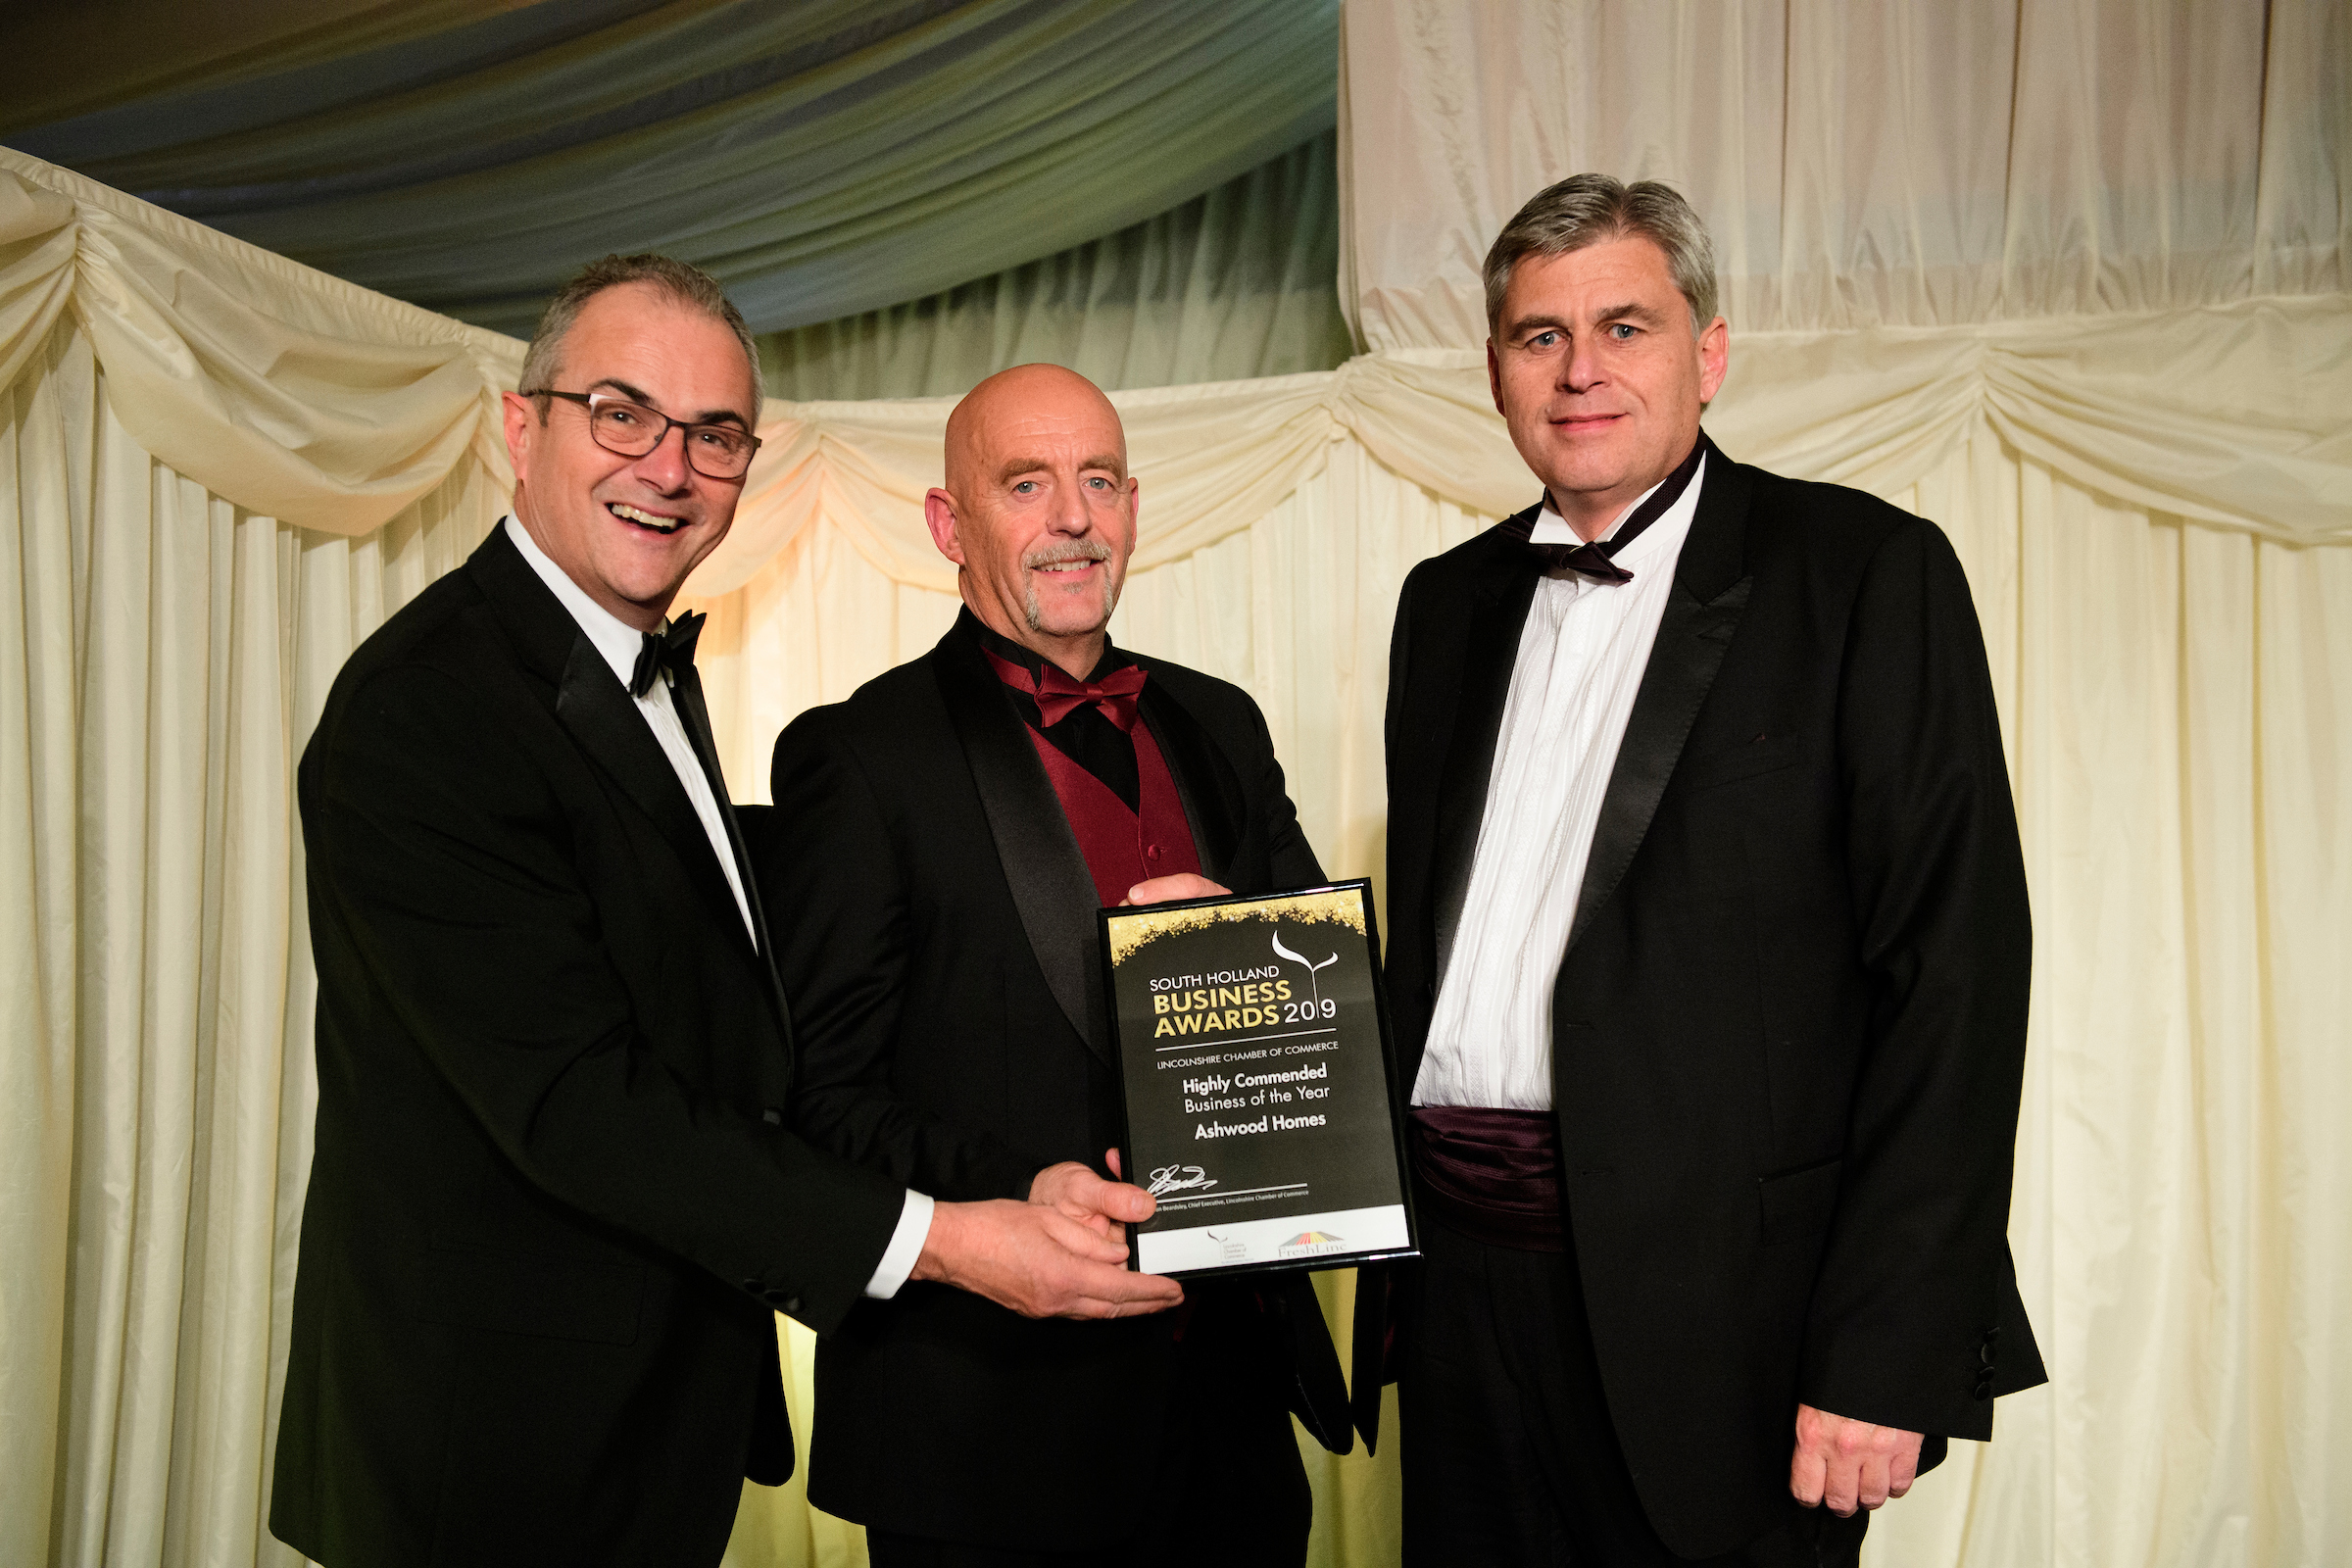 Three men in formal evening wear holding trophies and certificates and smiling at the South Holland Business Awards 2019